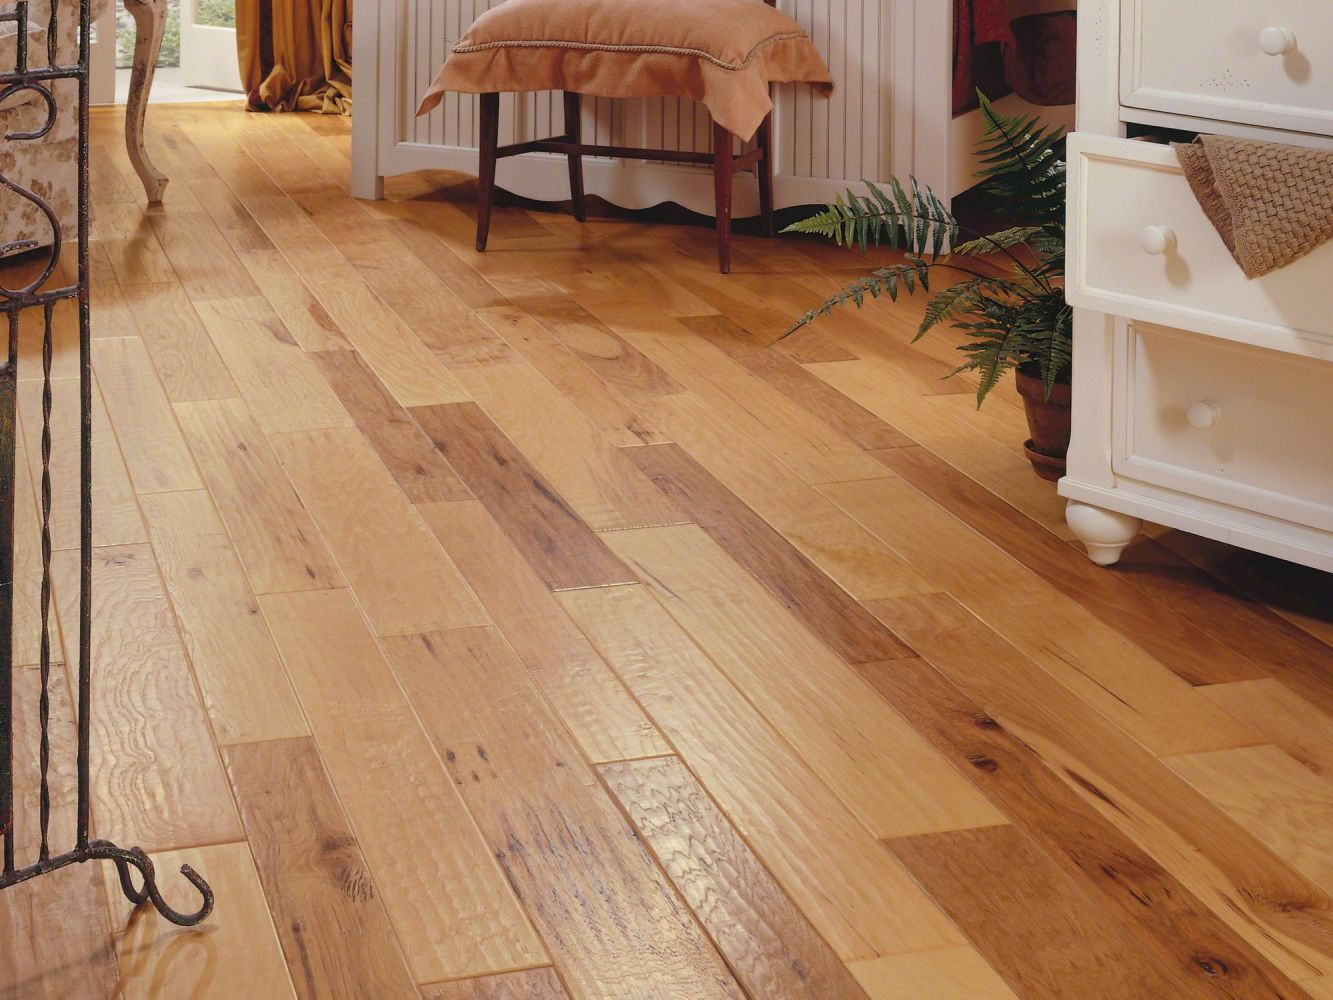 Anderson Tuftex Home Fn Gold Hardwood Artisan Hickory 357 Spicy Cider 37142_HWATR